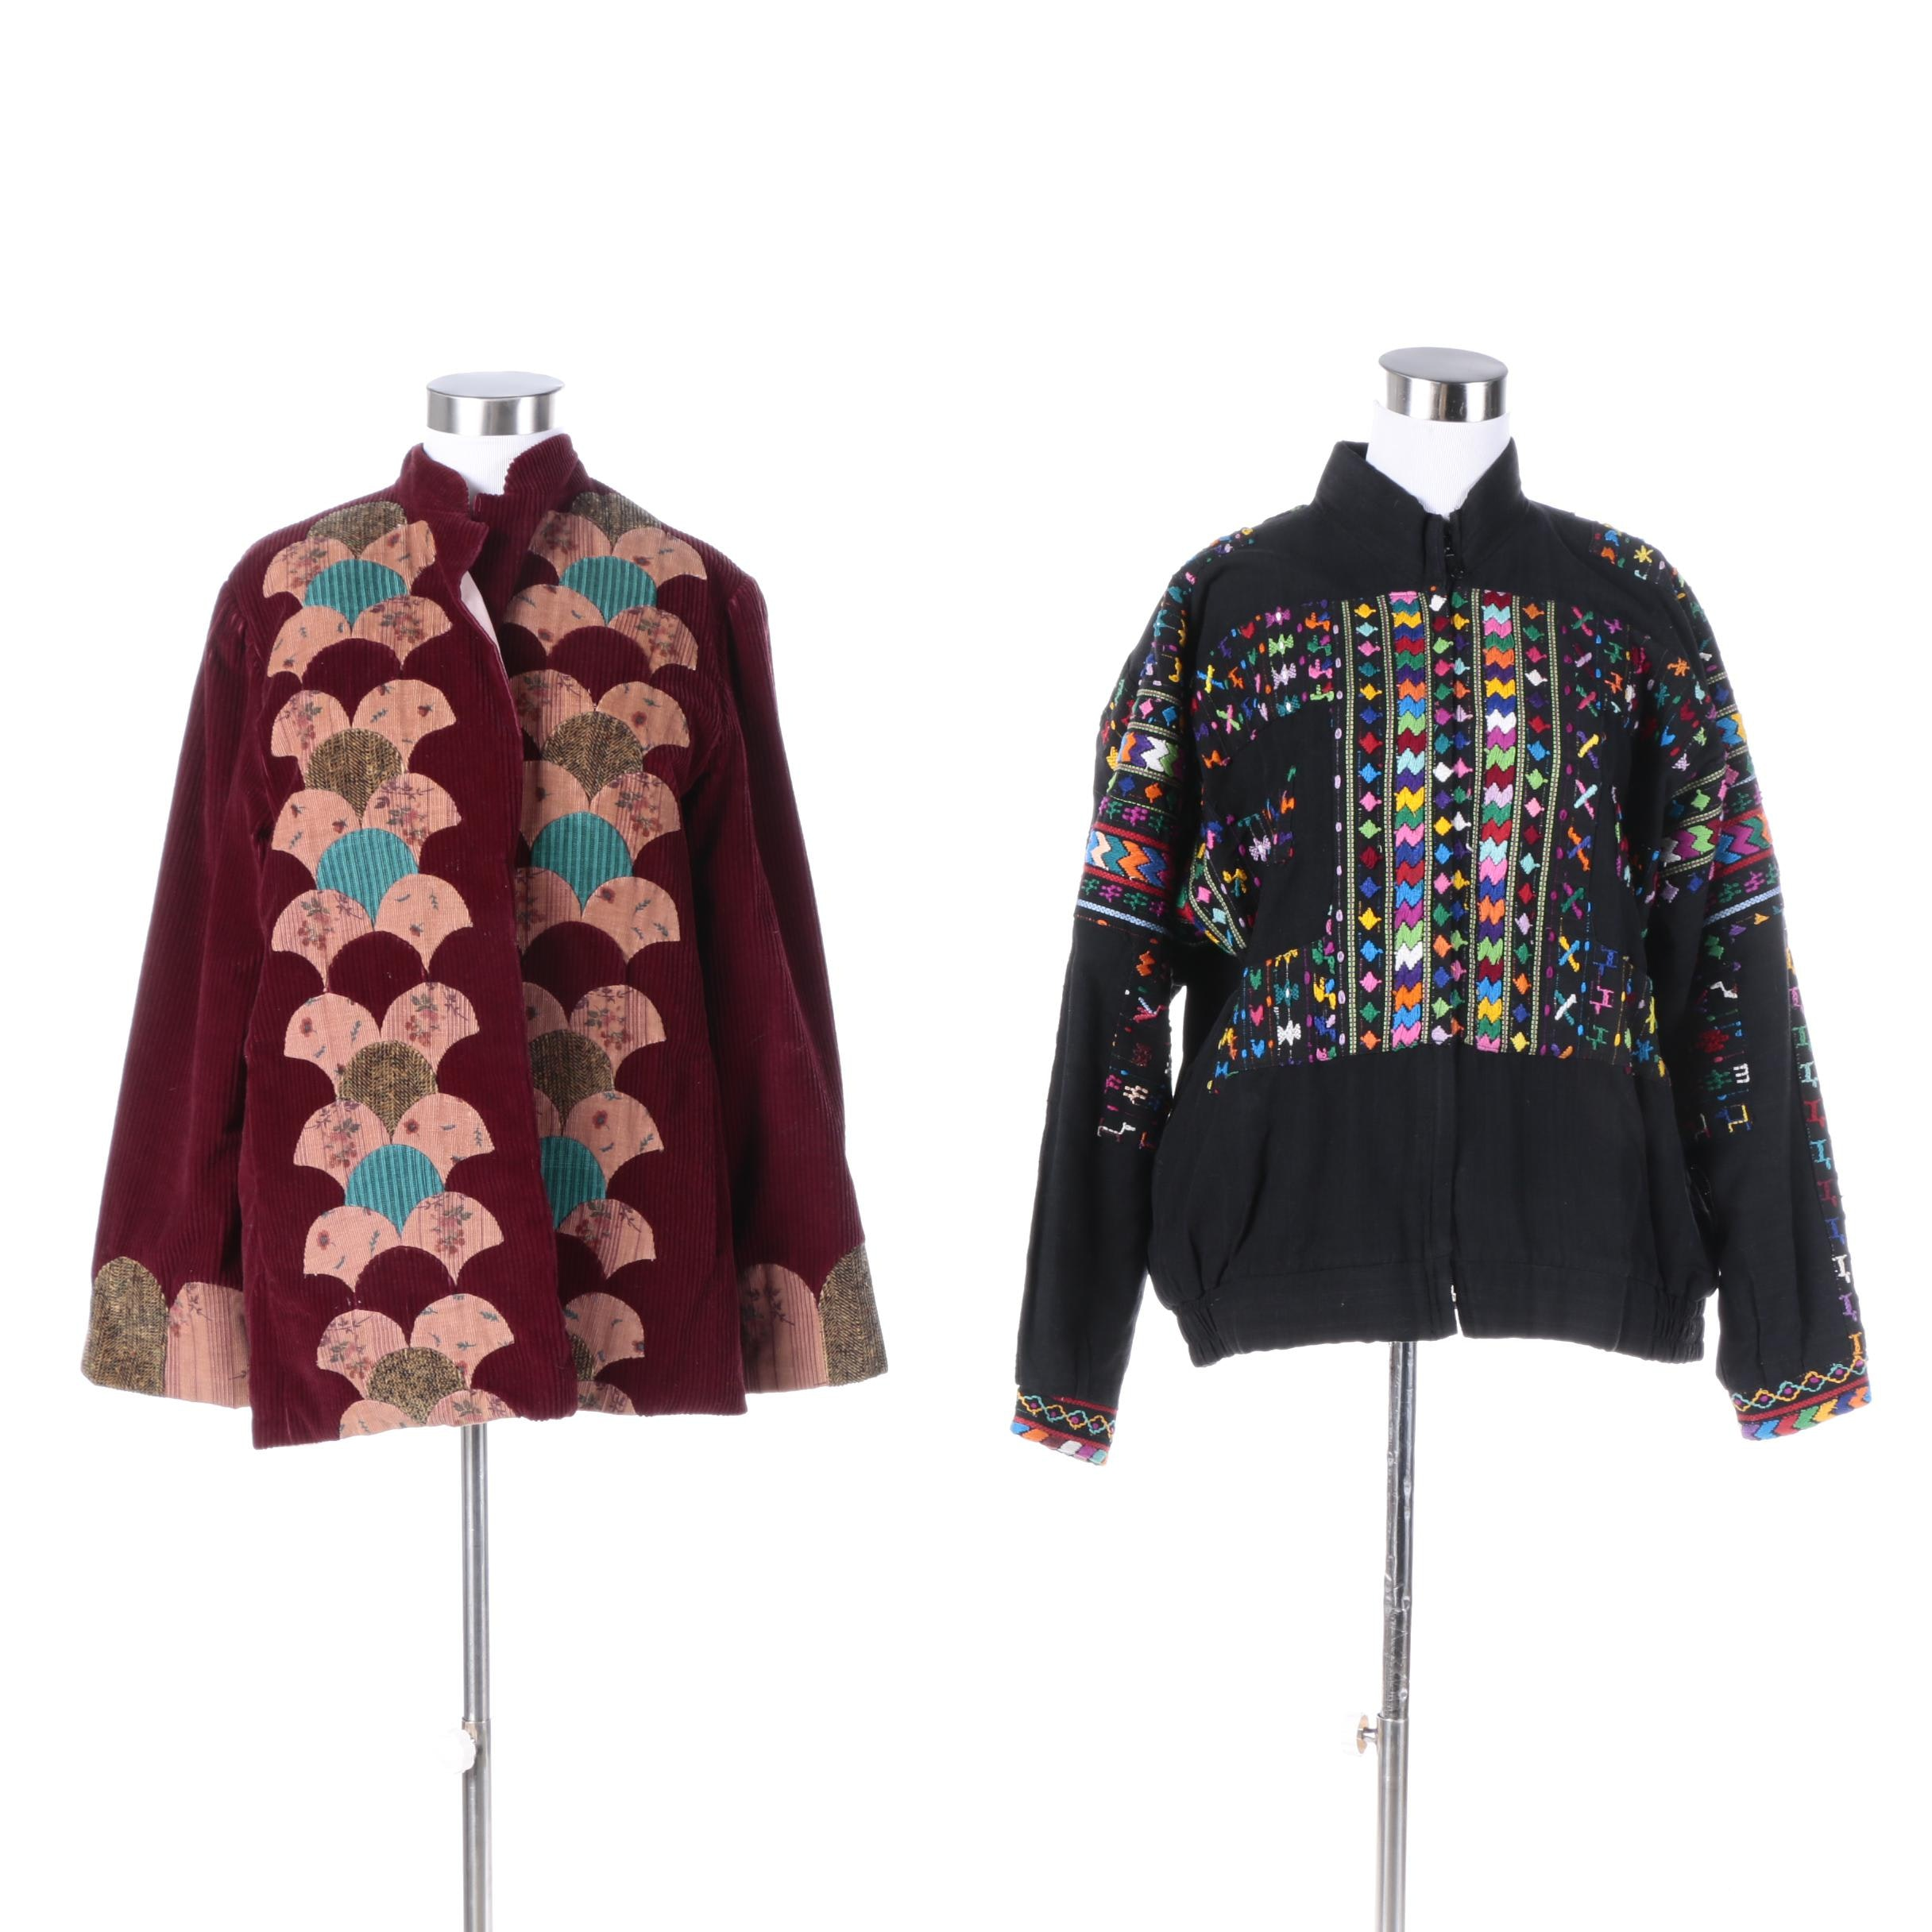 Women's Vintage Embellished Jackets